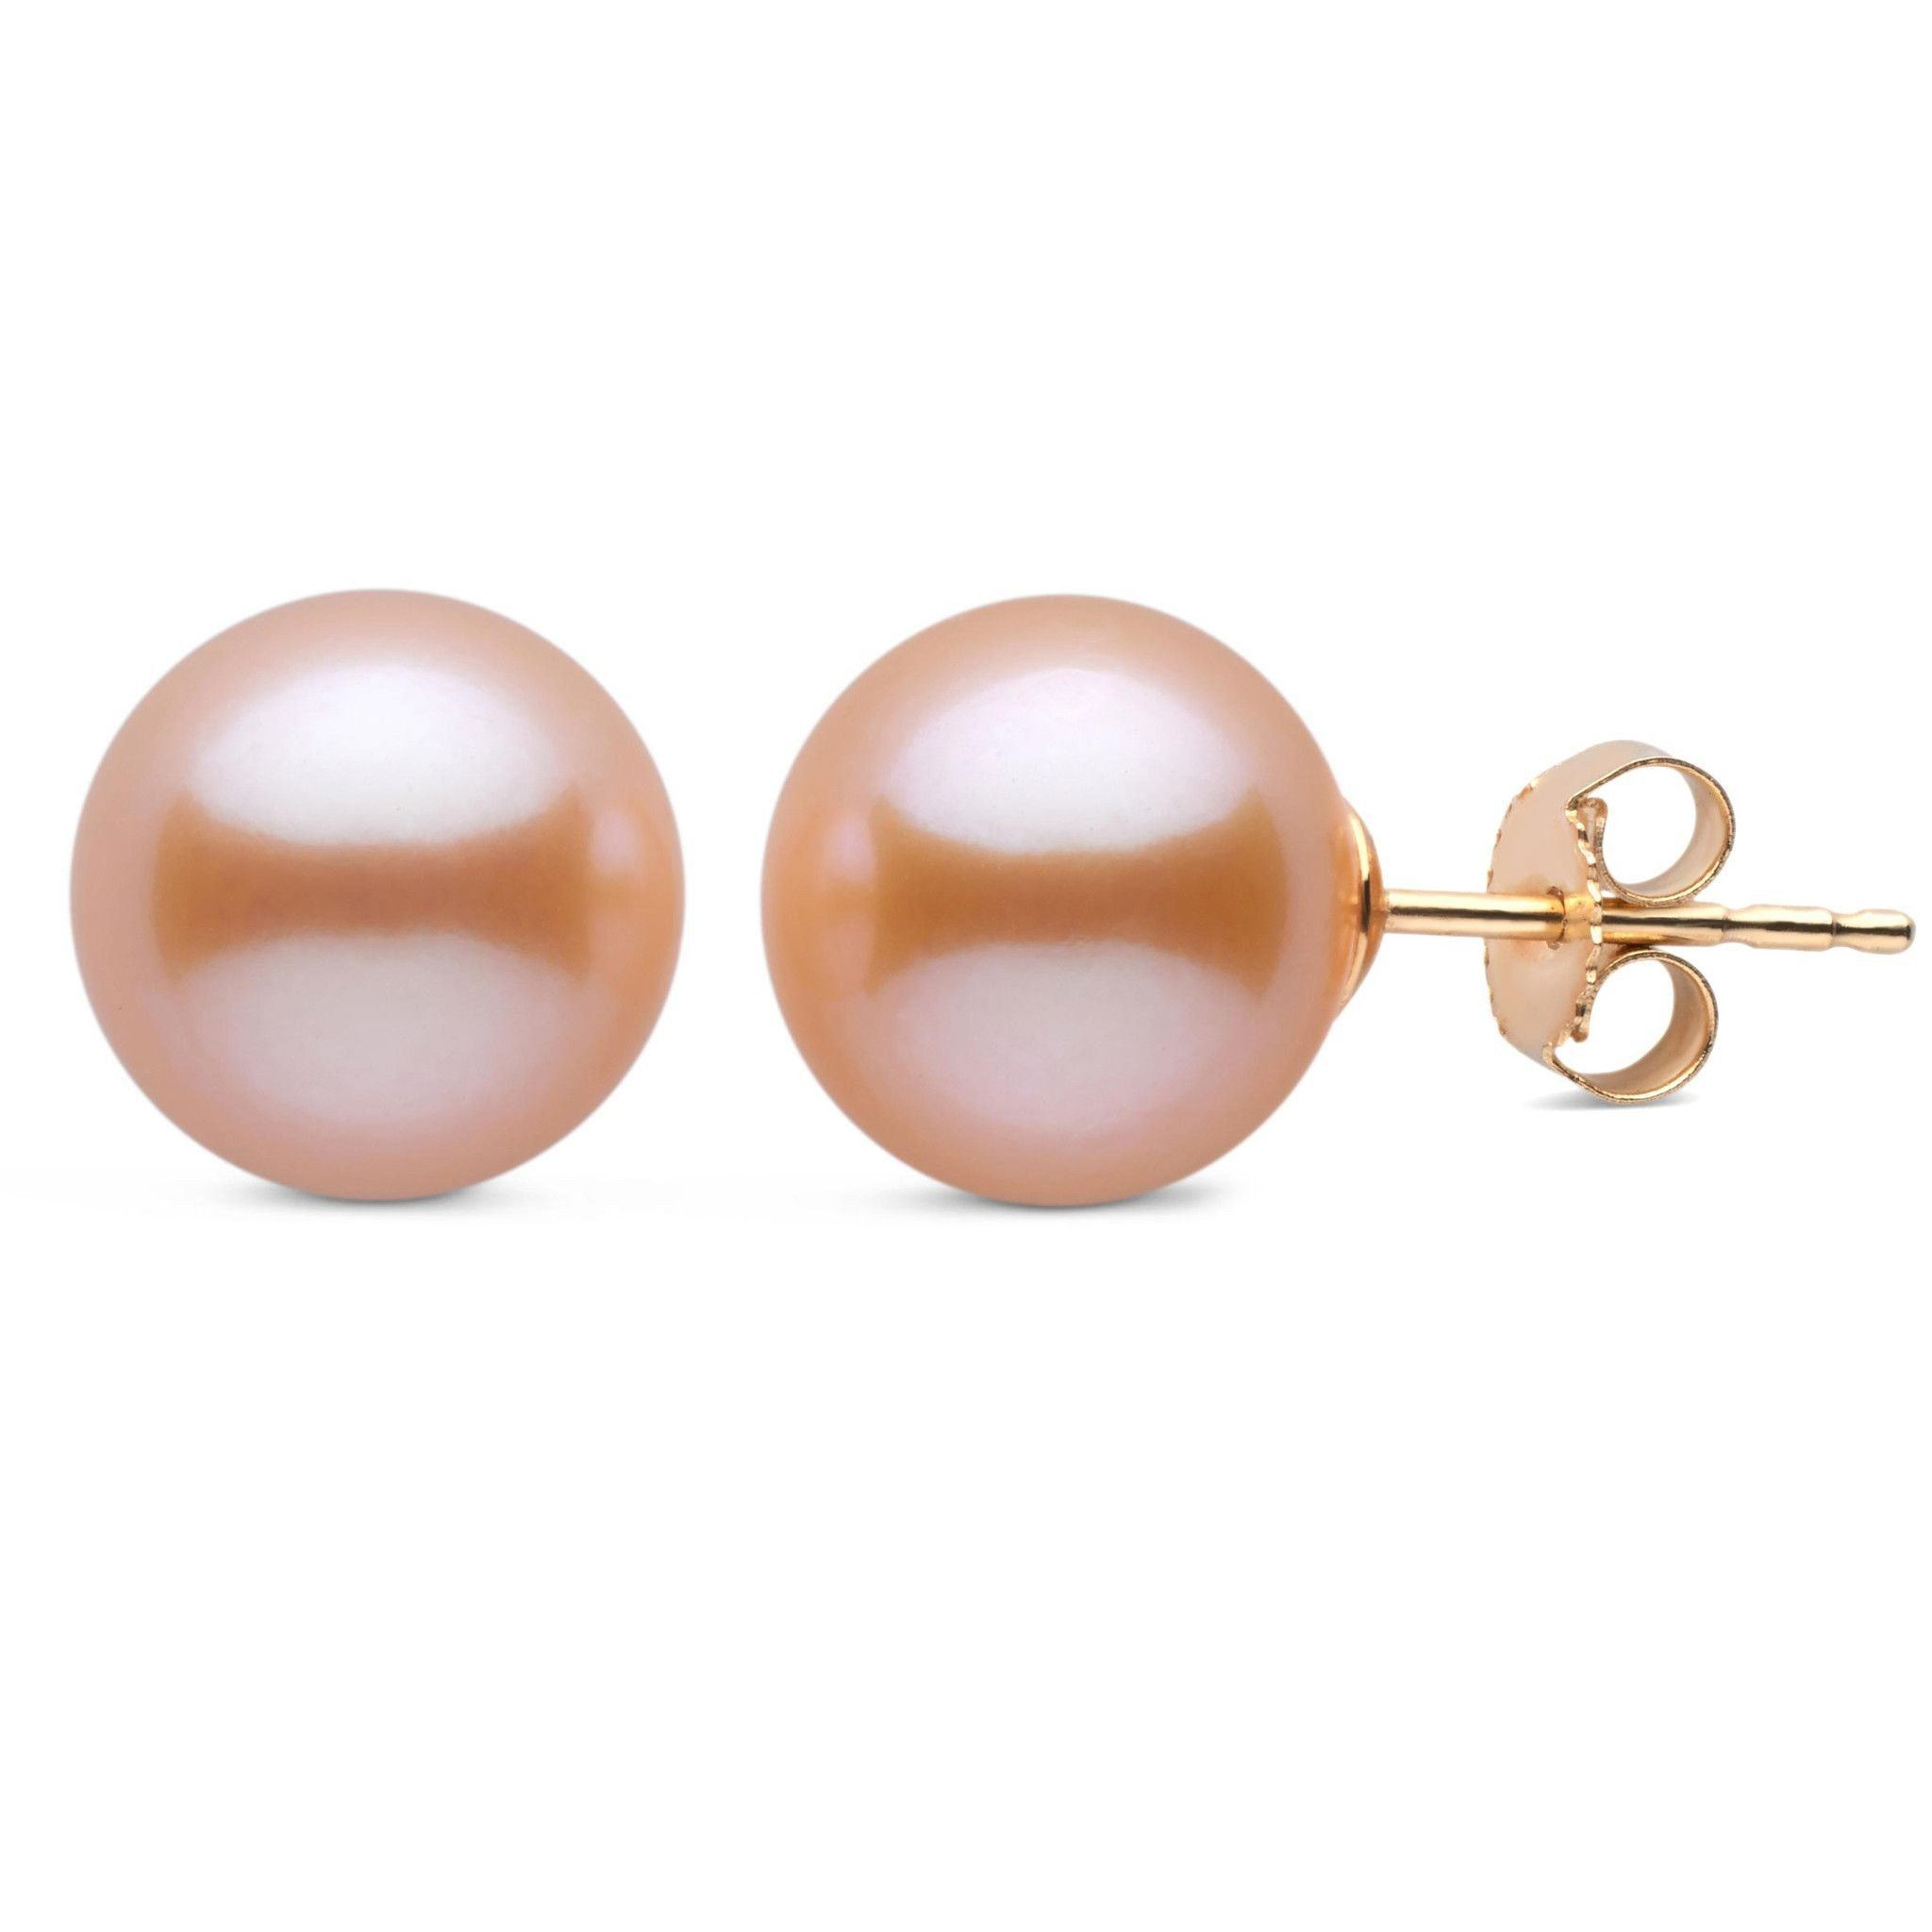 9.0-10.0 mm AAA Pink to Peach Freshwater Pearl Stud Earrings